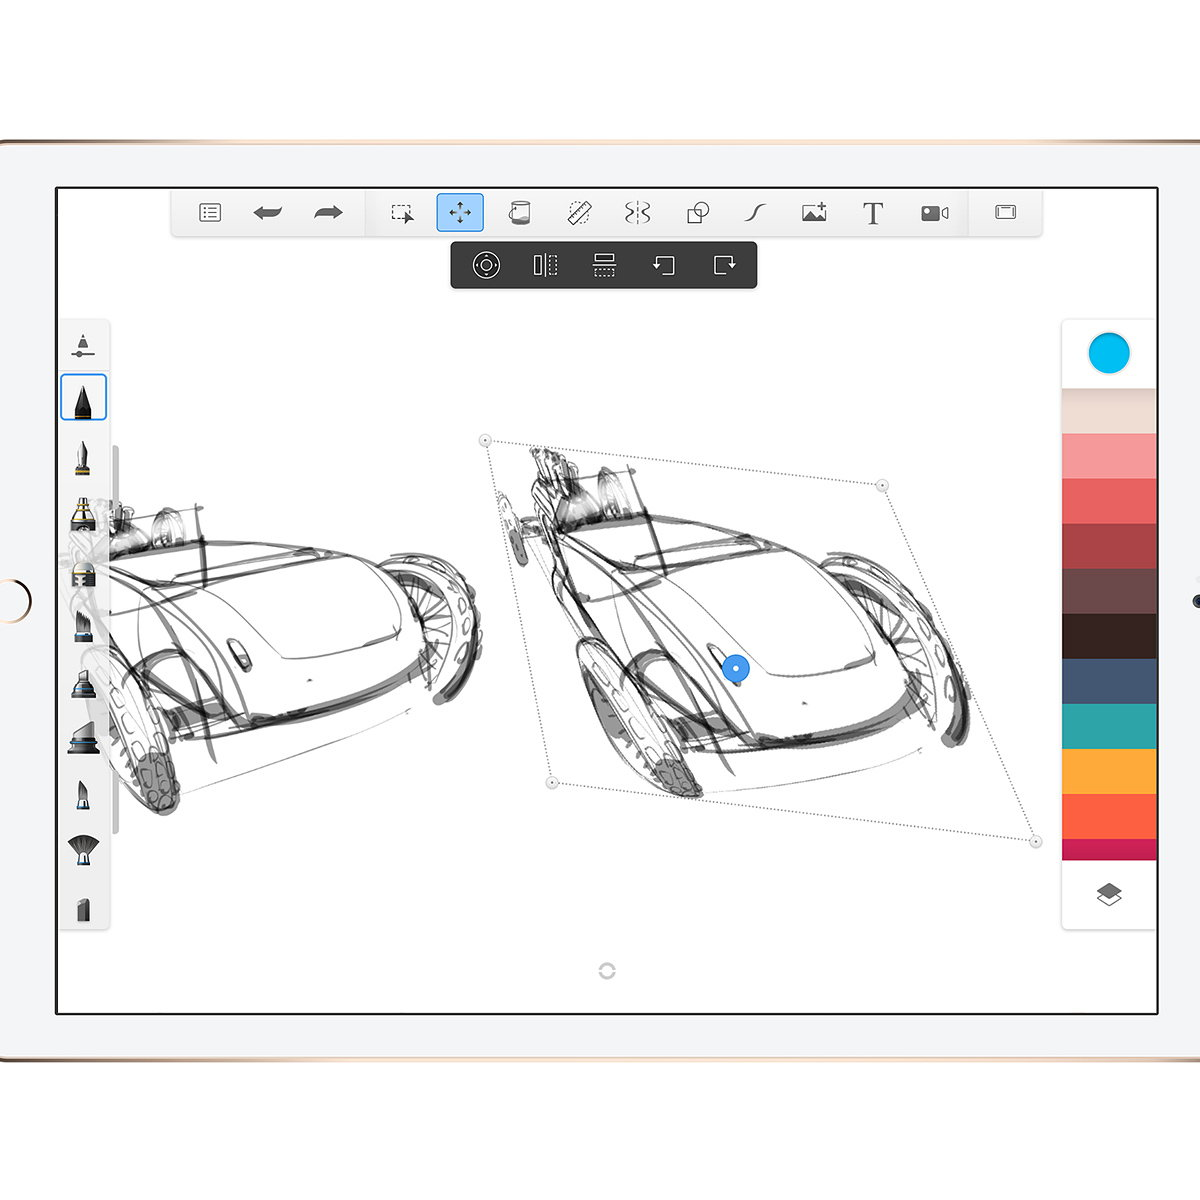 Autodesk SketchBook 4.0 for iOS Arrives in the App Store